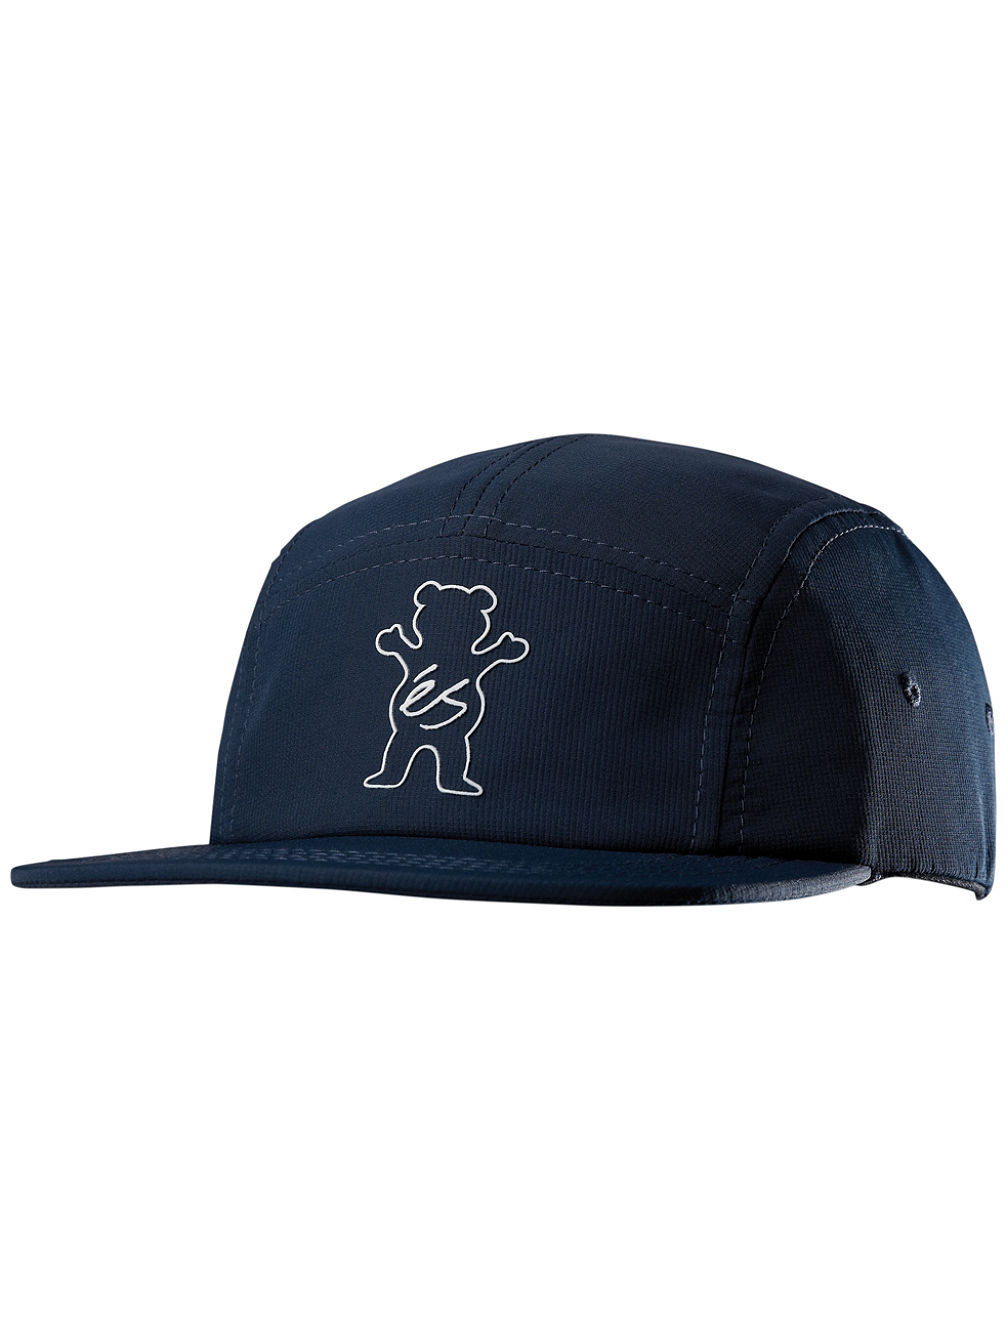 74990725 Buy Es X Grizzly Wimbledon Strapback Cap online at Blue Tomato